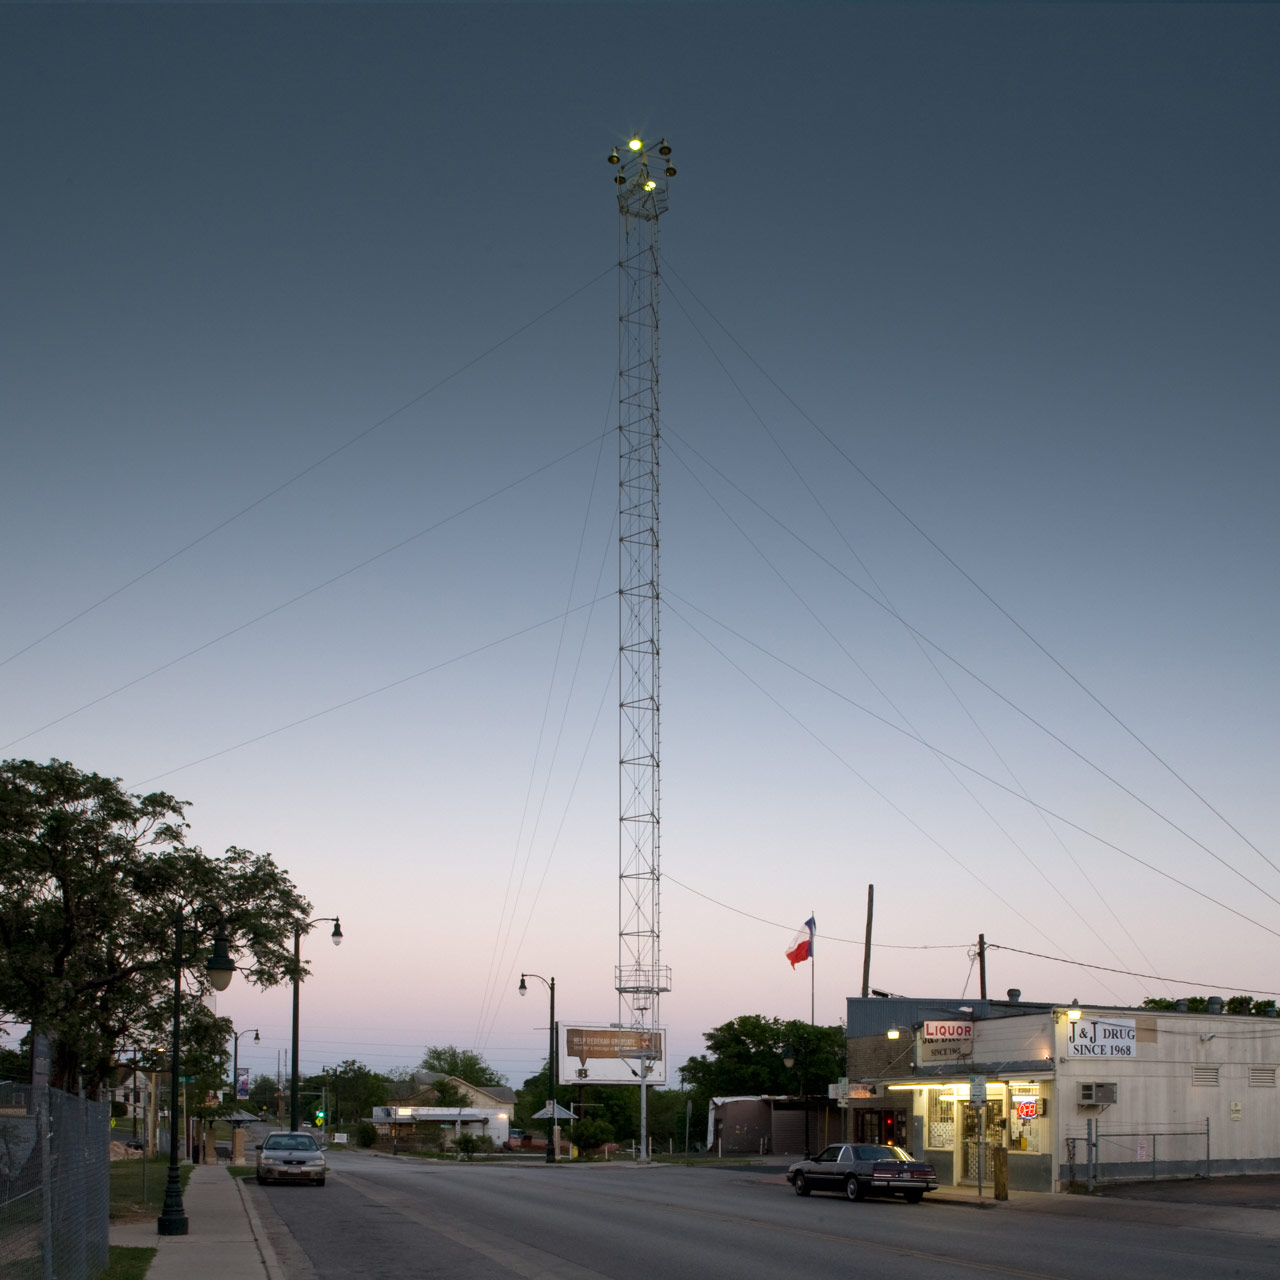 Andy_Mattern-Moonlight_Tower_11th-&-Lydia